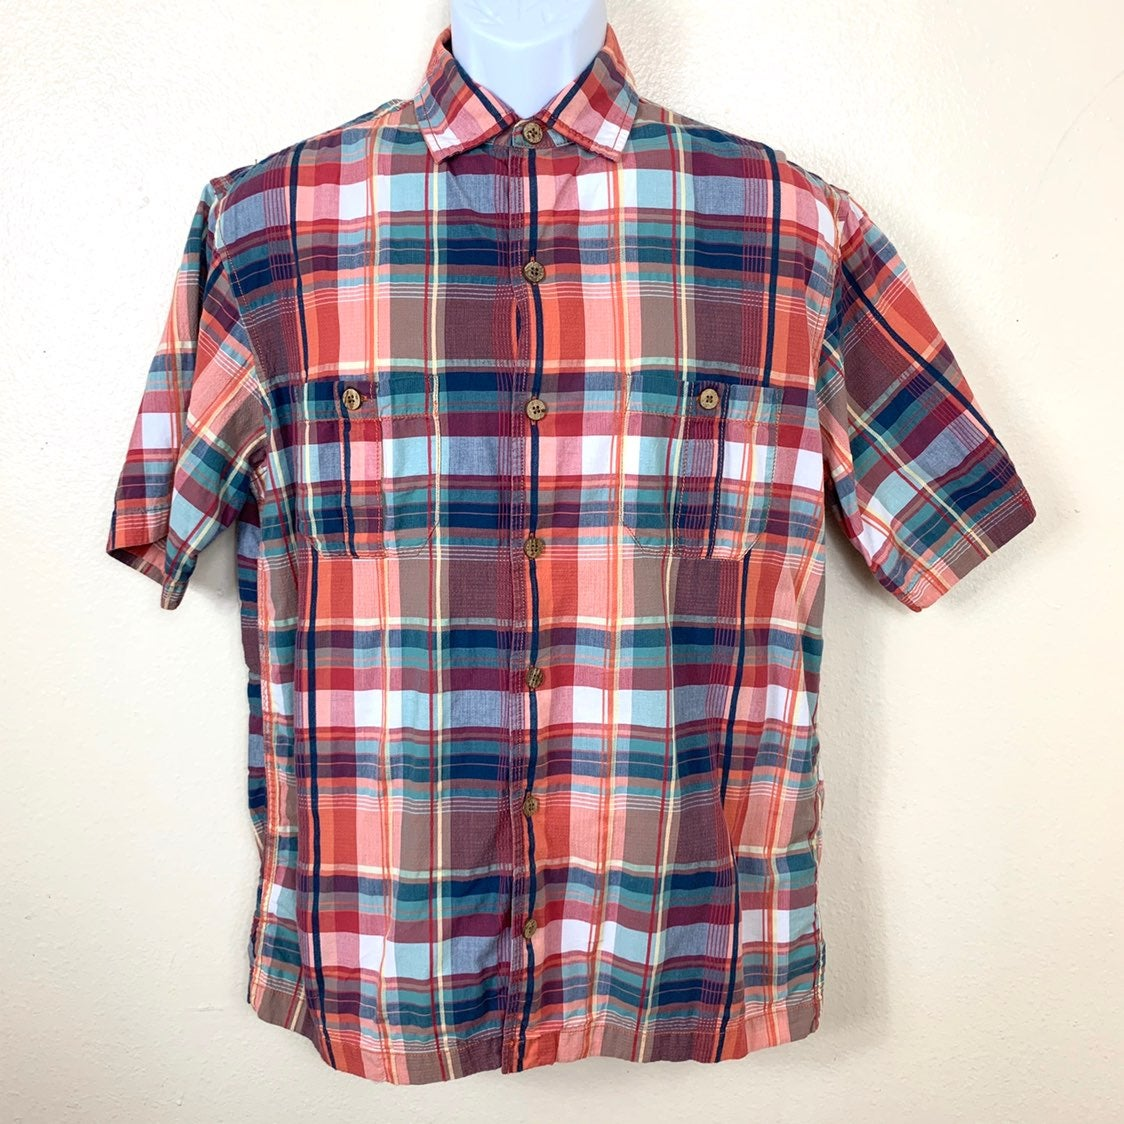 Caribbean Men's Shirt plaid multicolored